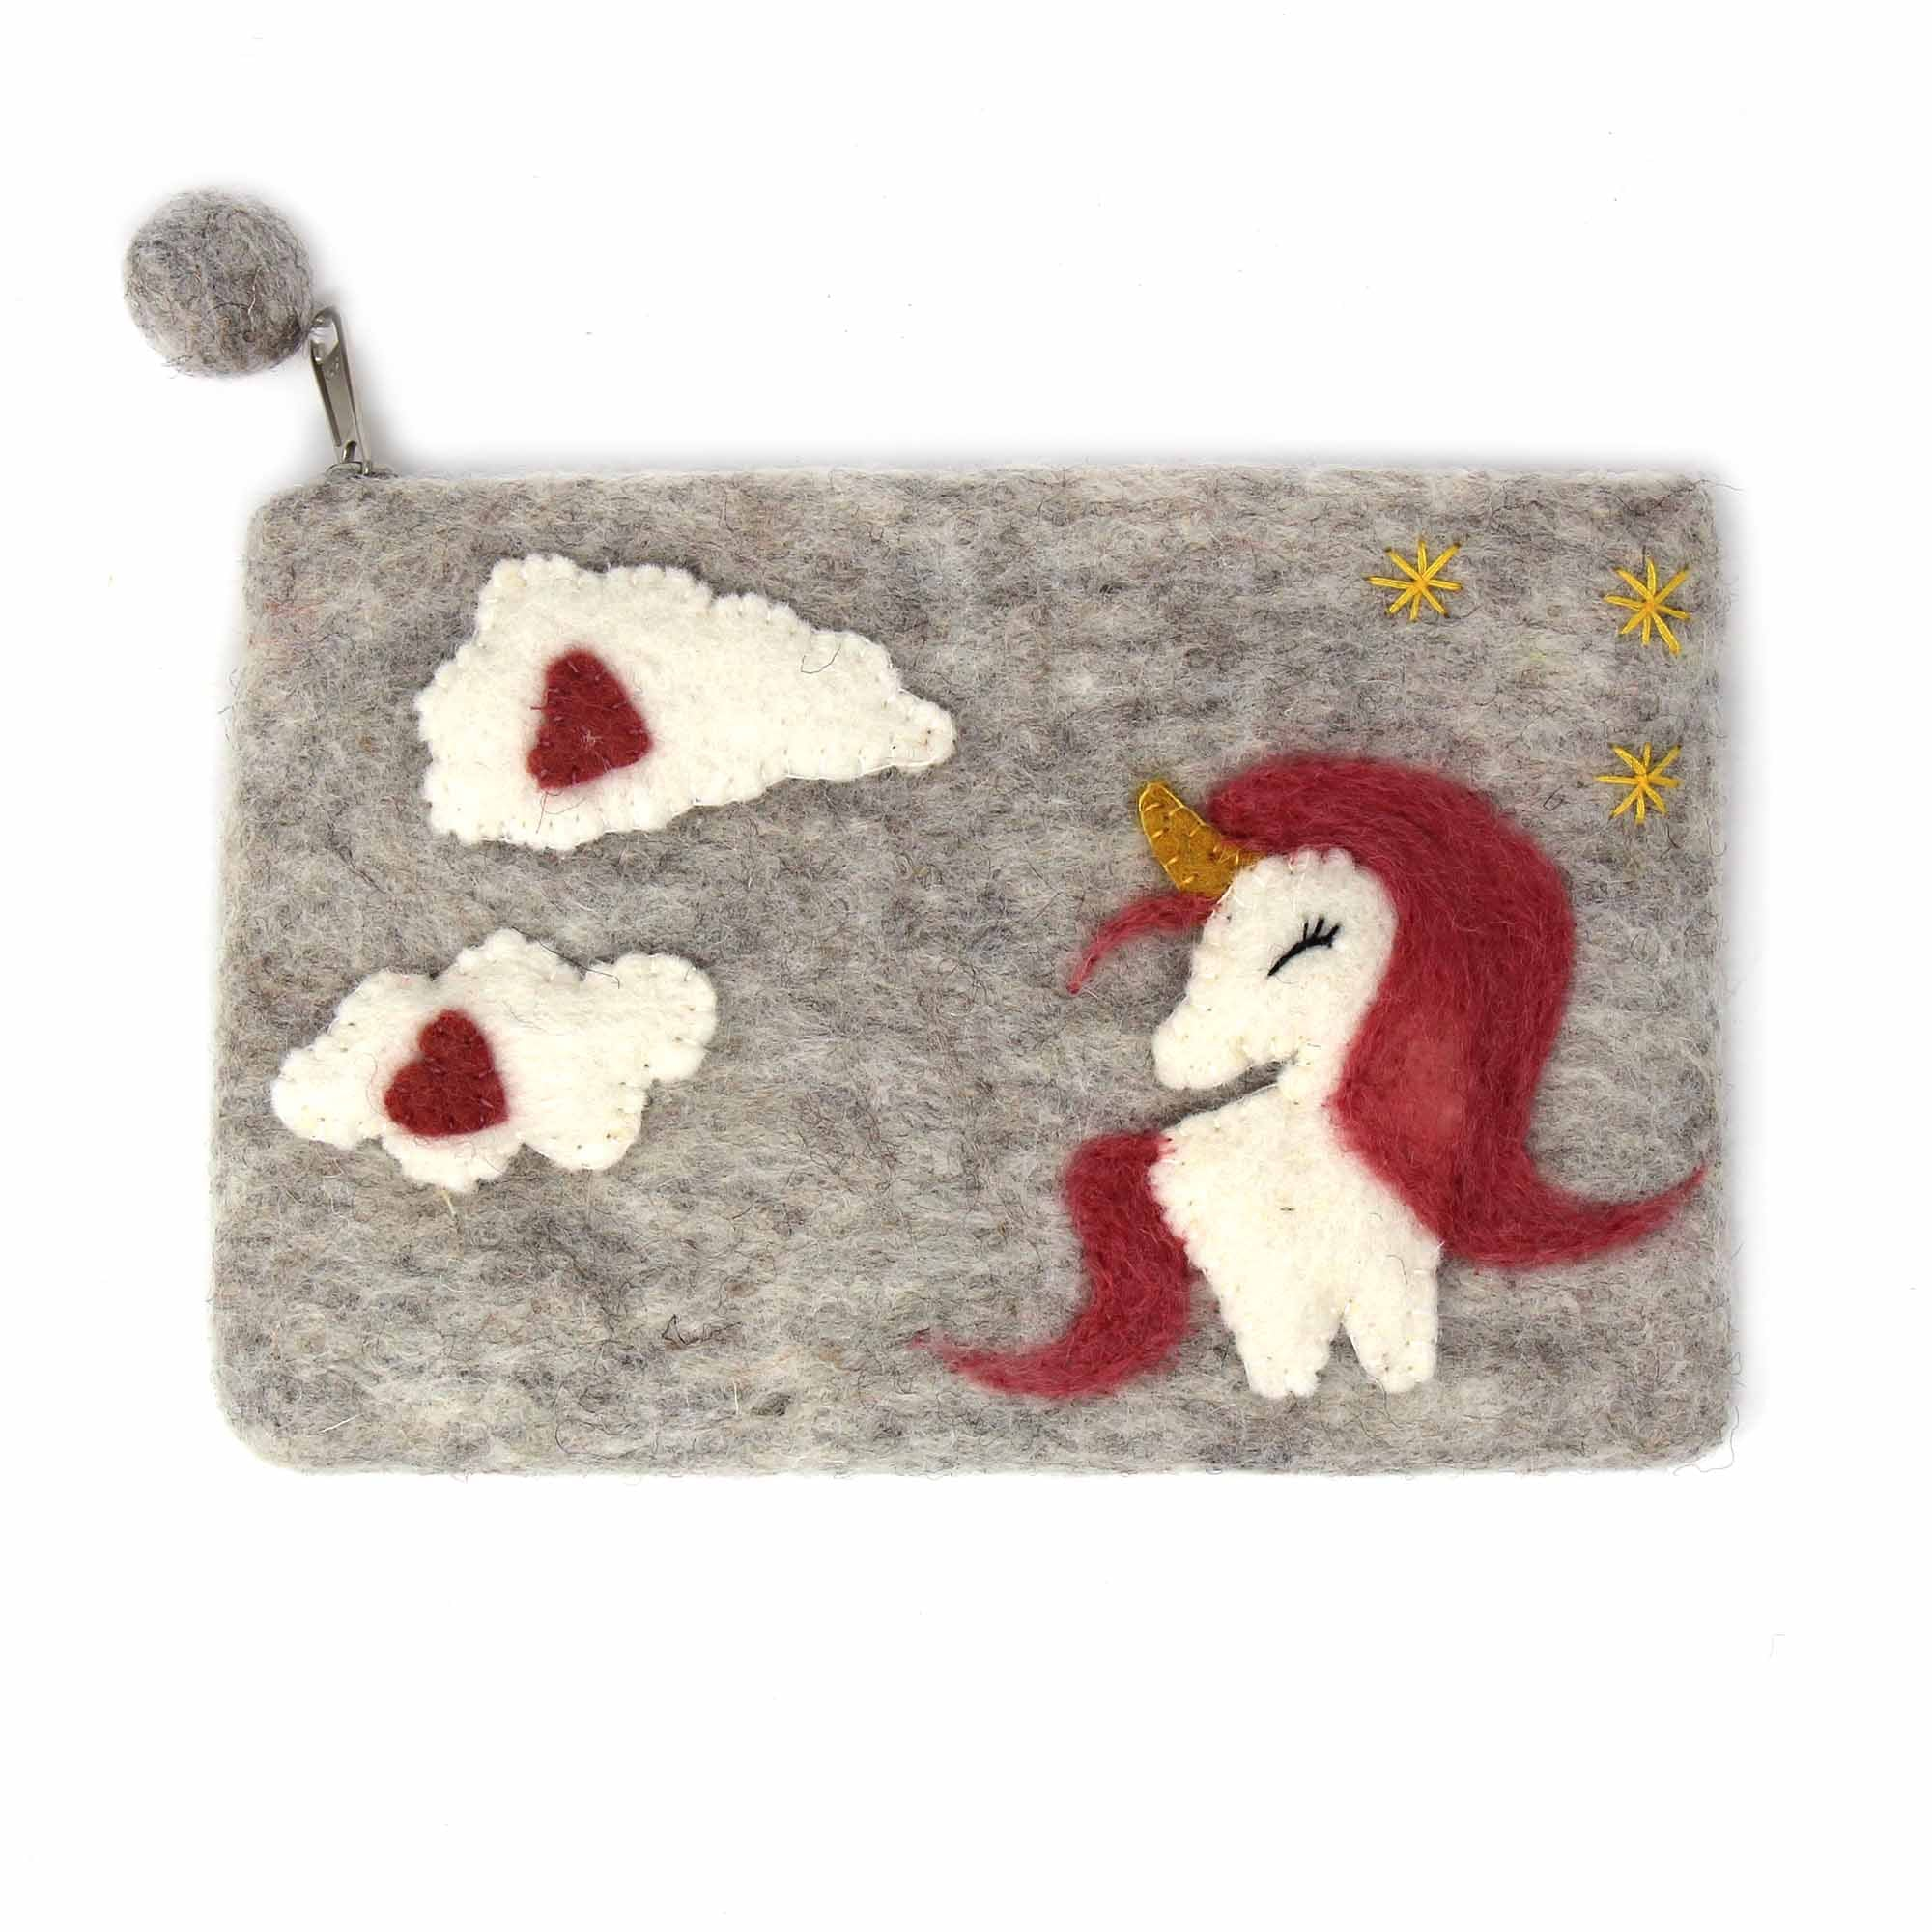 Hand Crafted Felt Unicorn Pouch